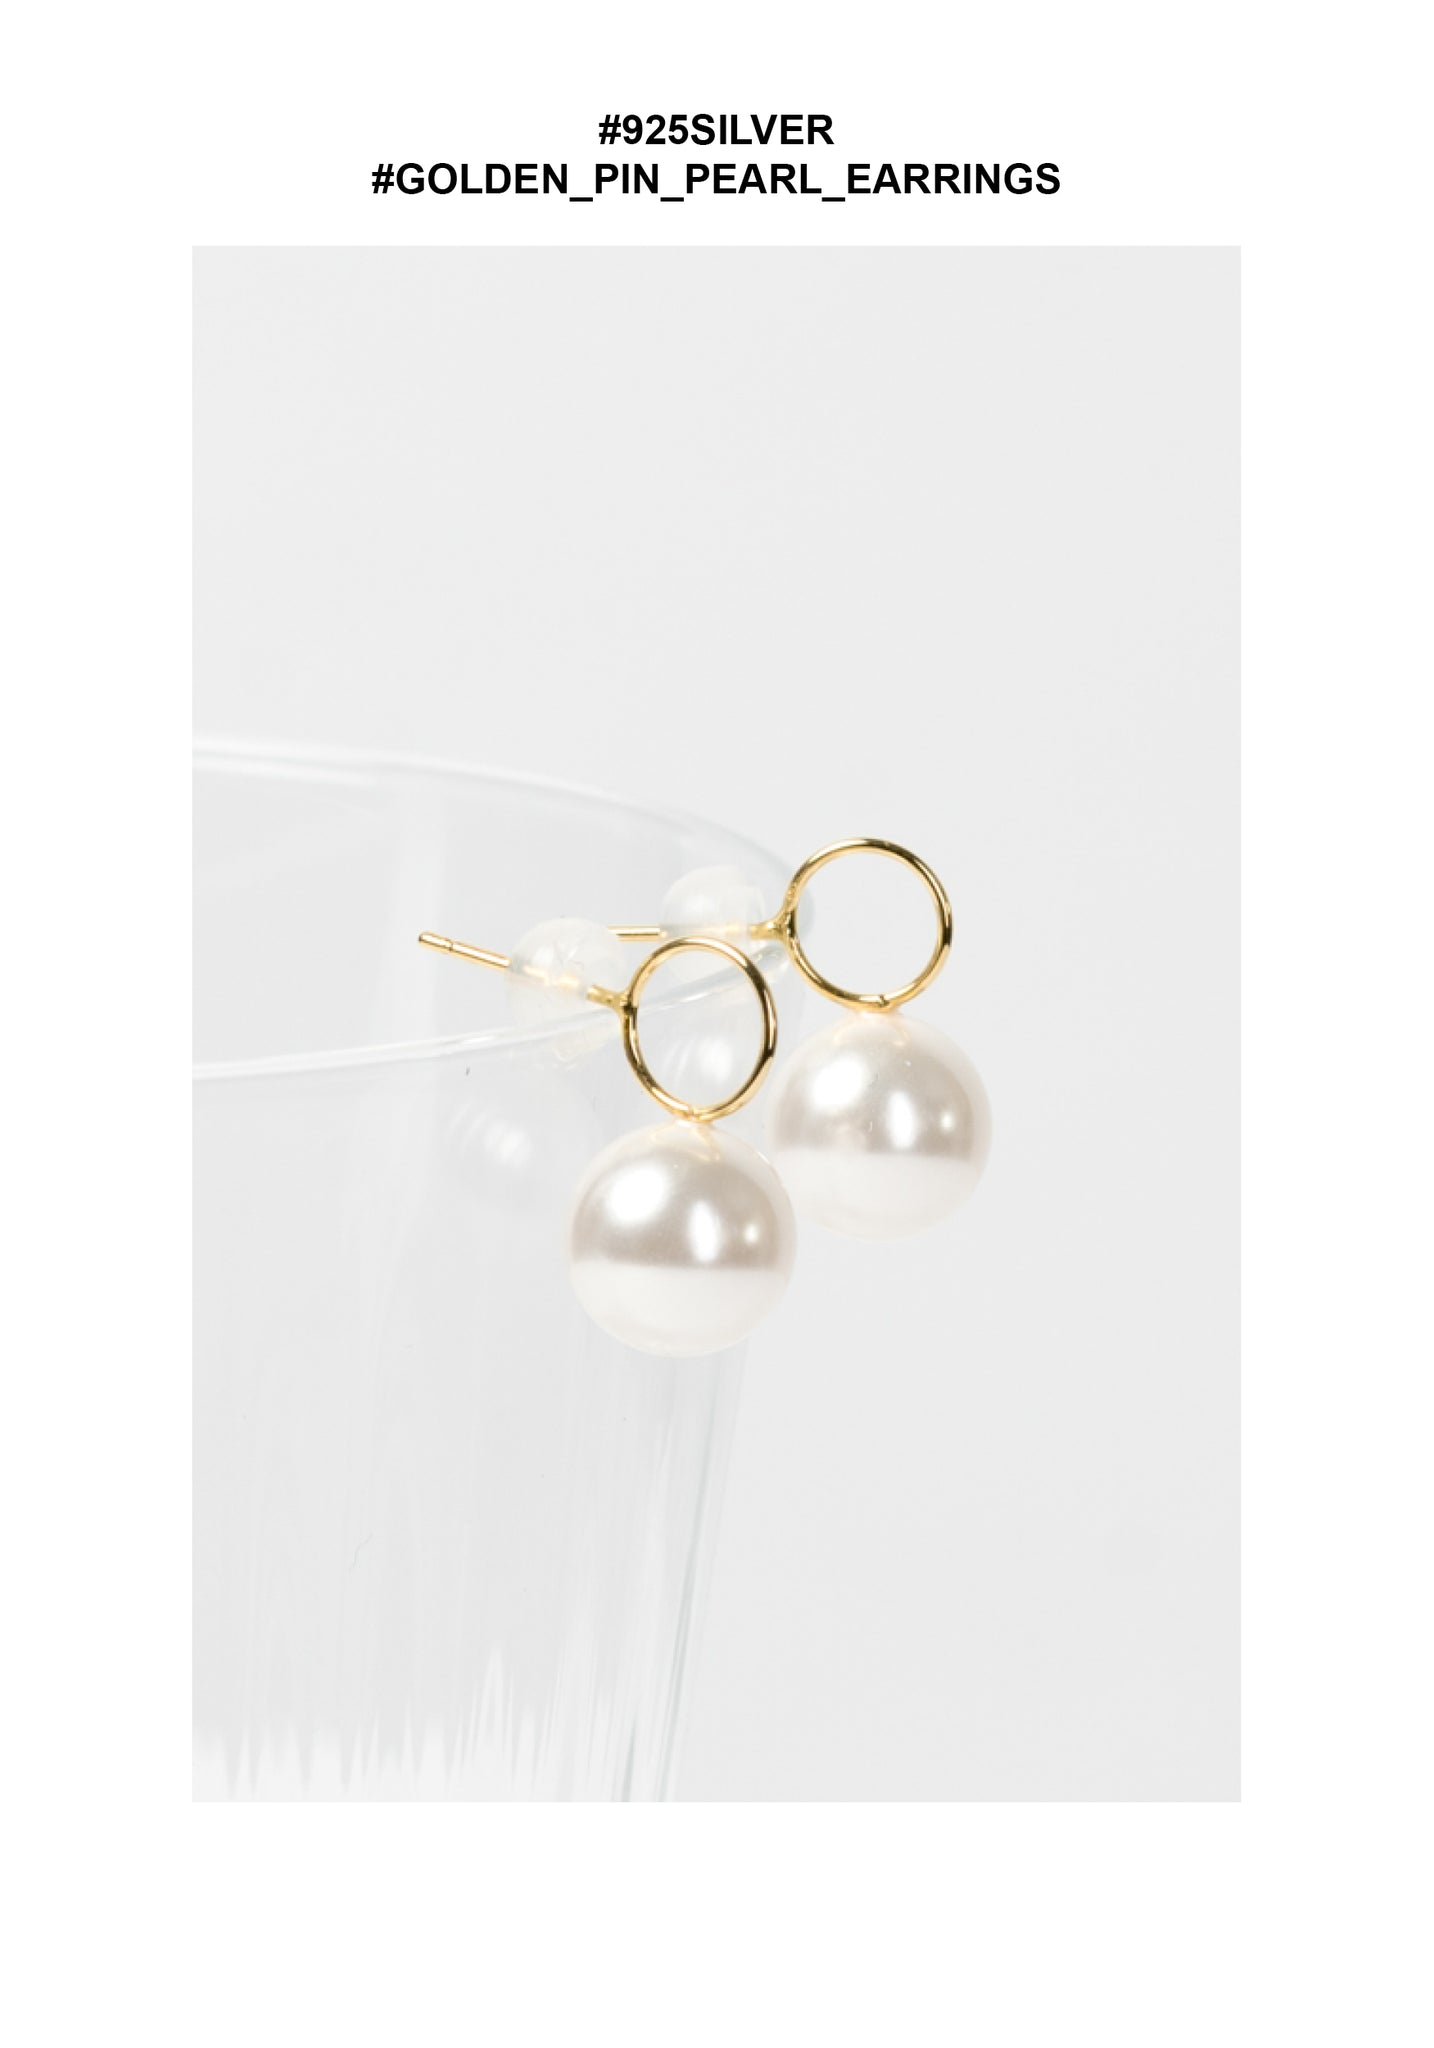 925 Silver Golden Pin Pearl Earrings